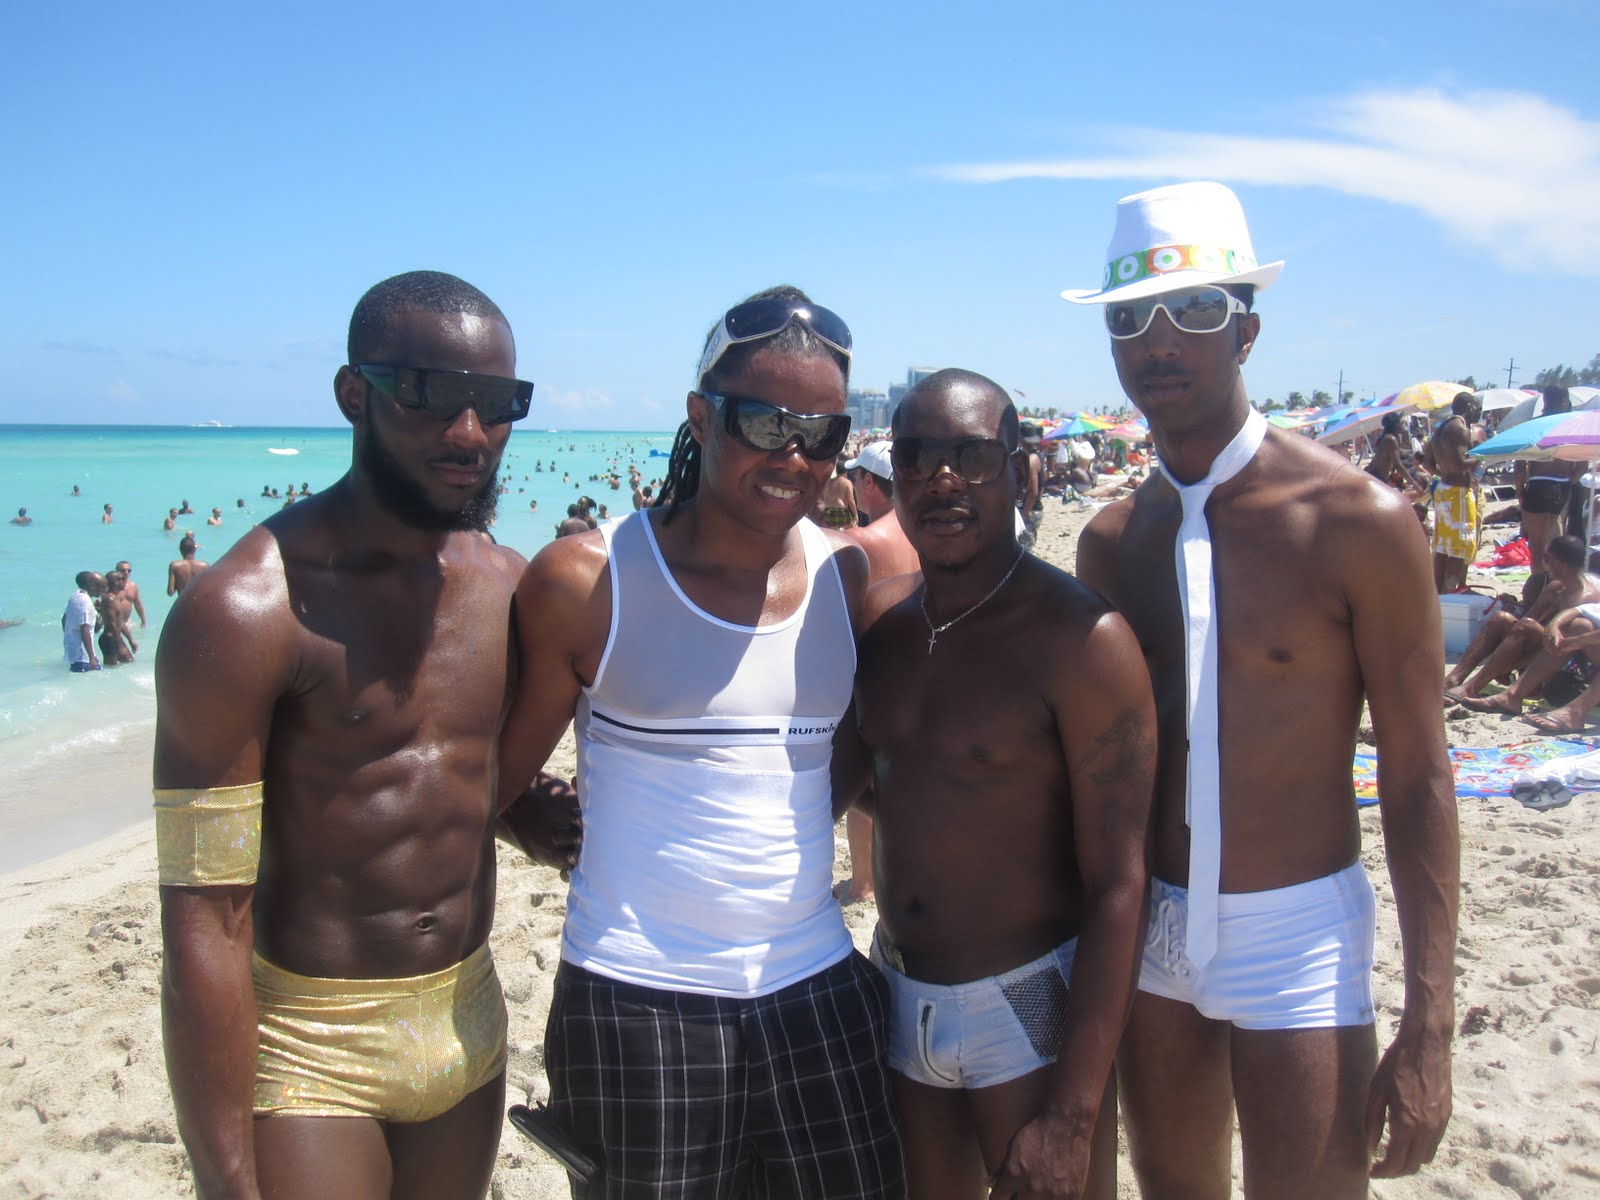 beach party at haulover beach fl warning some pics contain nudity to